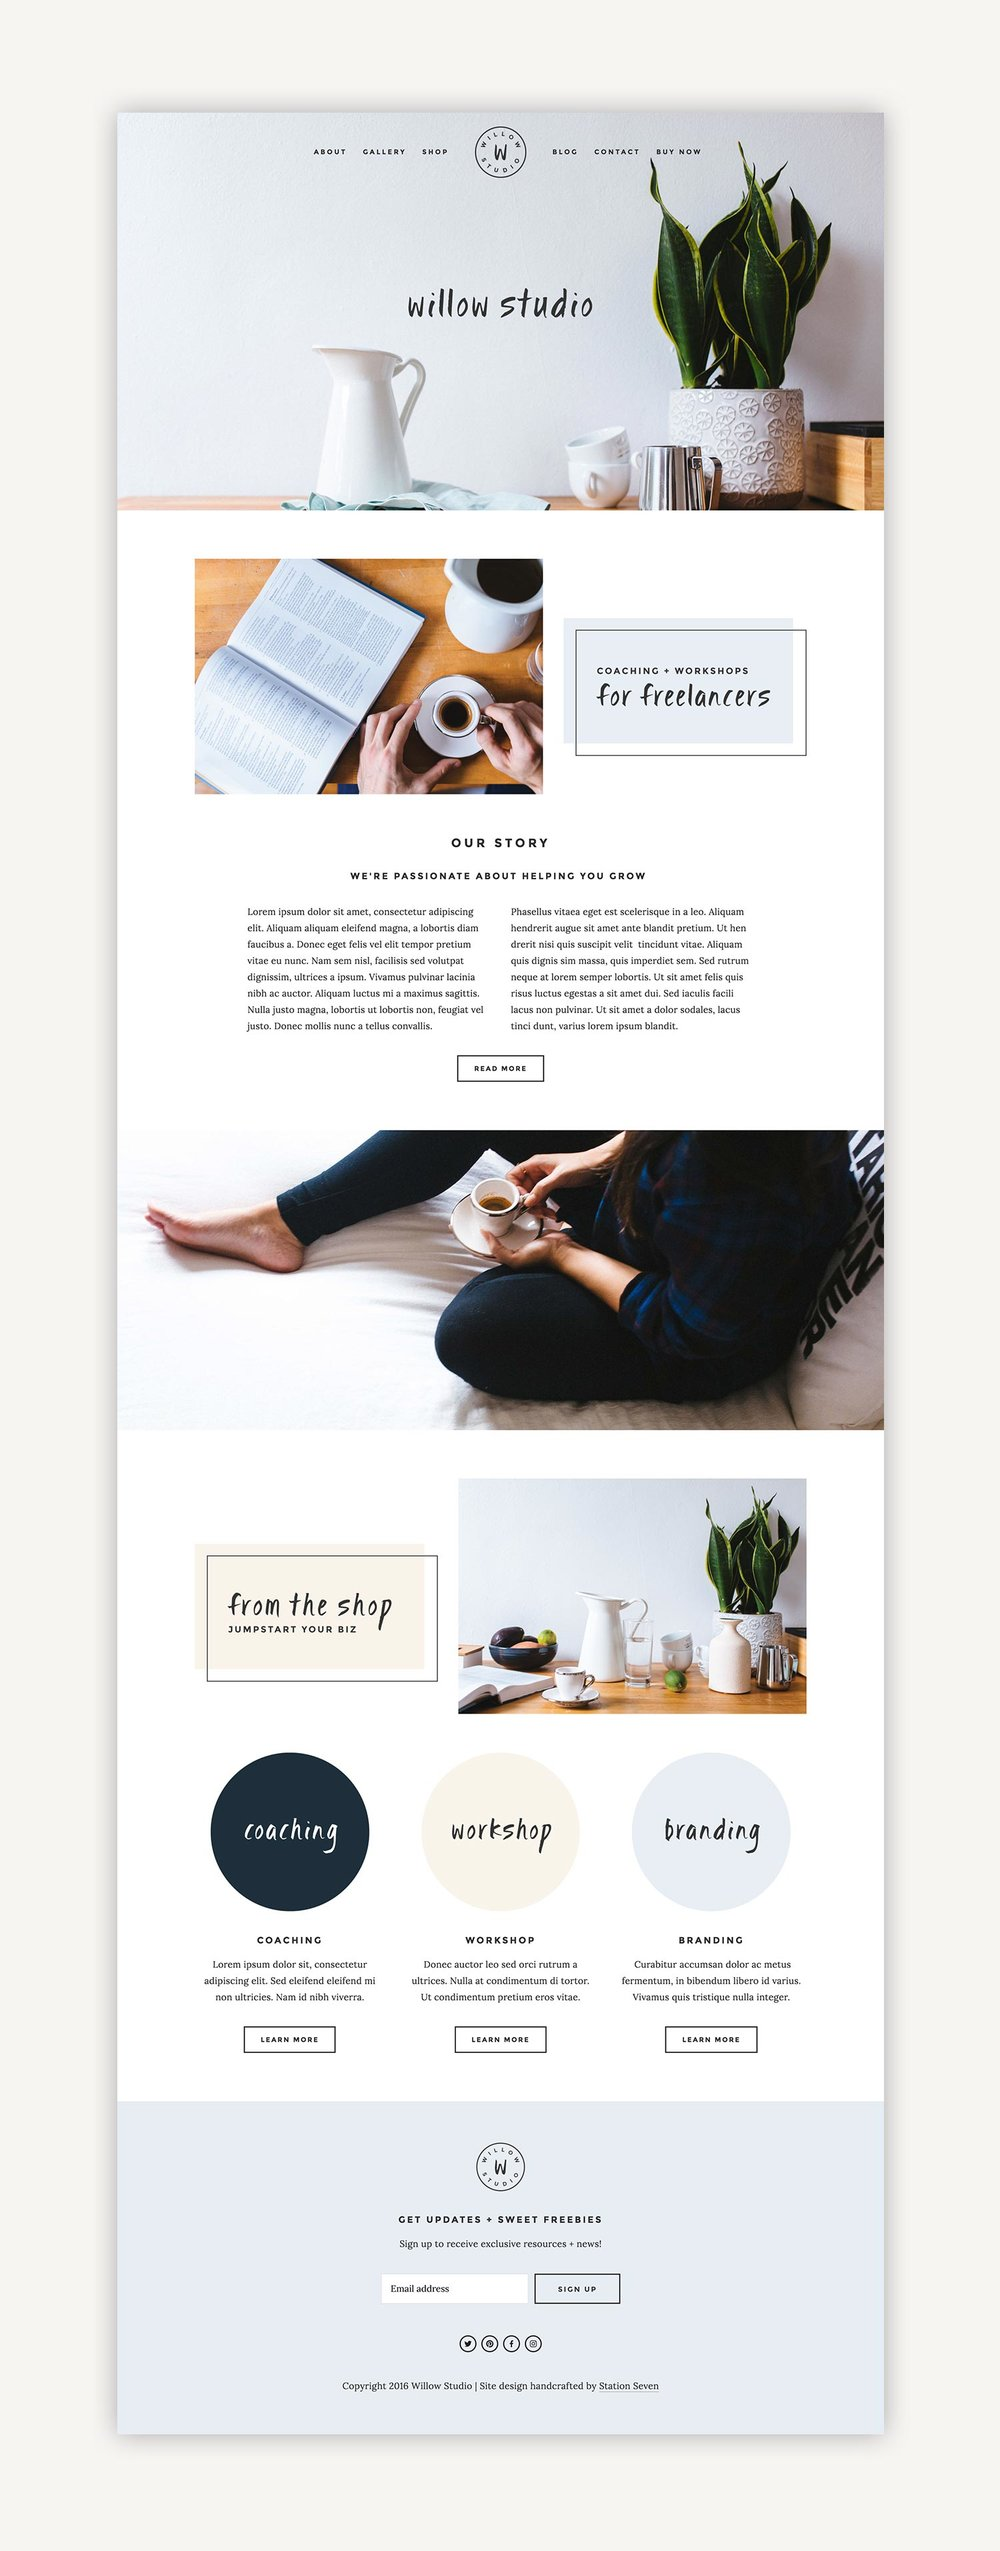 willow squarespace kit station seven squarespace templates wordpress themes and free resources for creative entrepreneurs